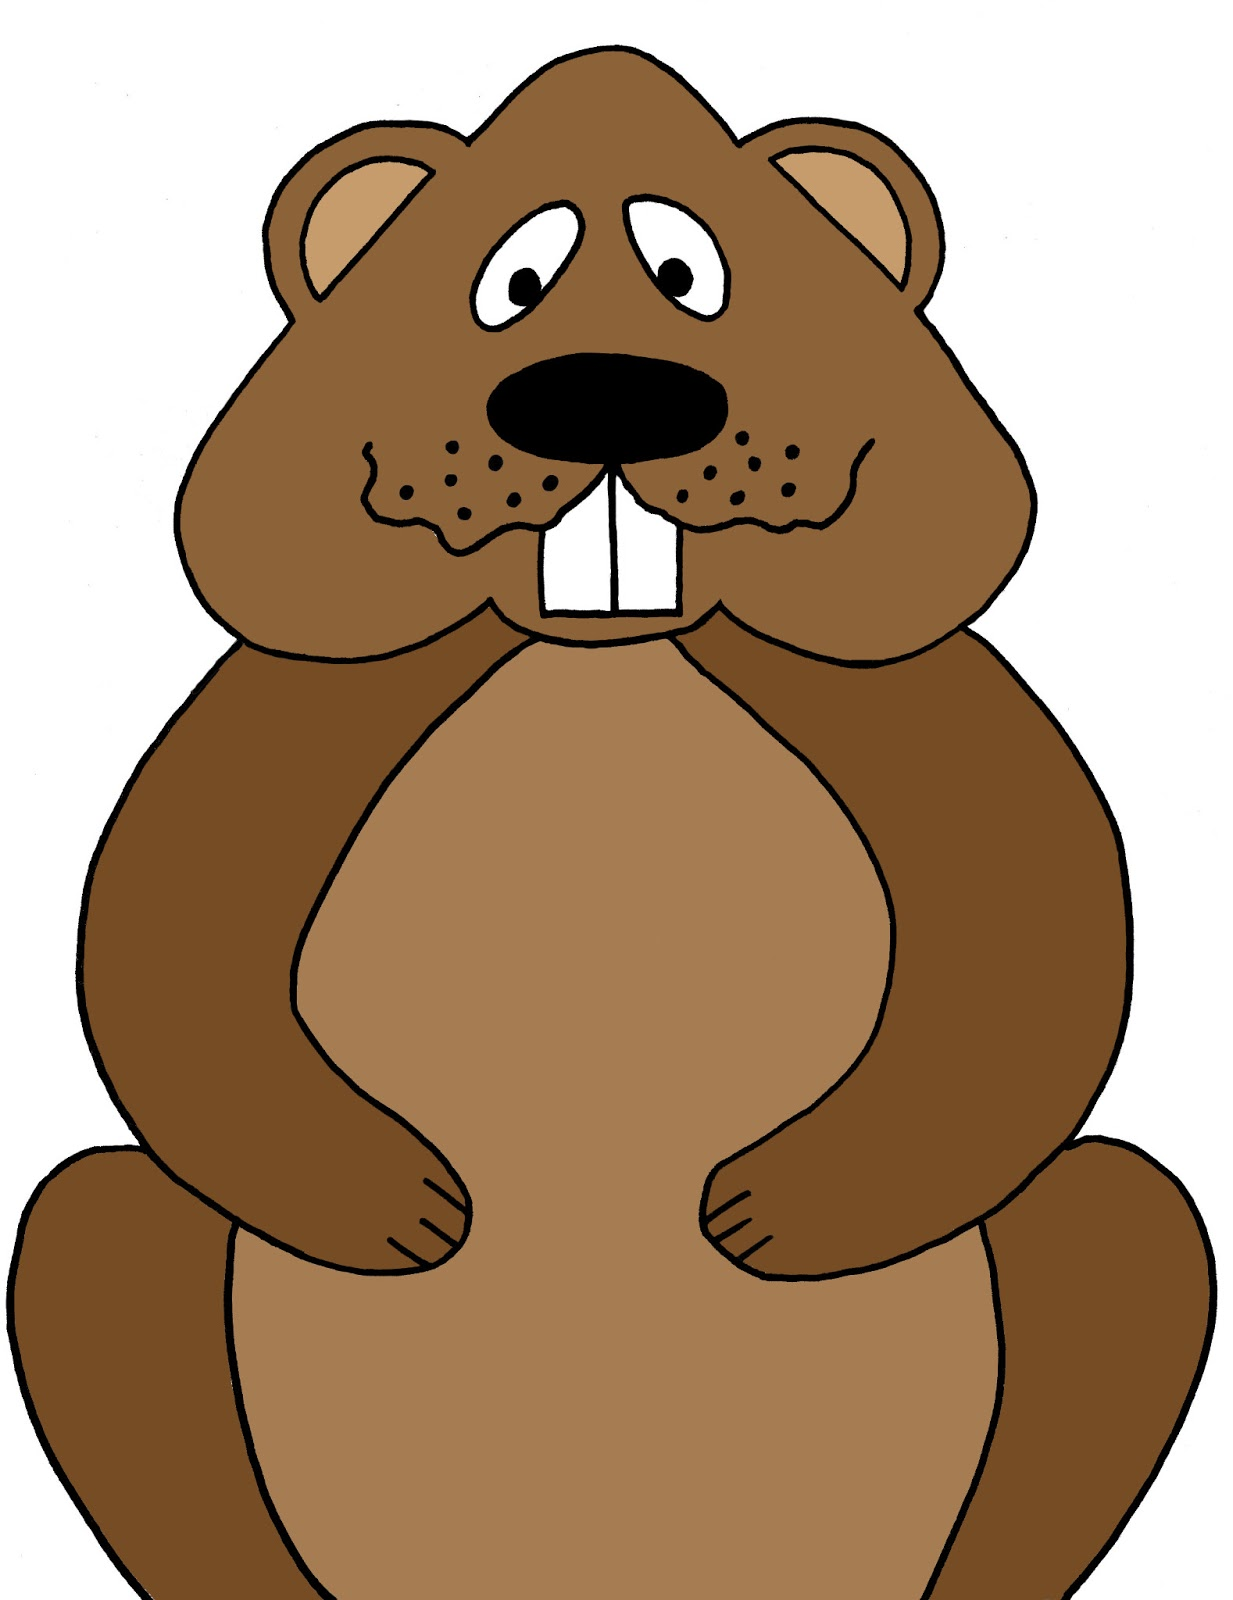 groundhog day clipart at getdrawings com free for personal use rh getdrawings com woodchuck clipart free